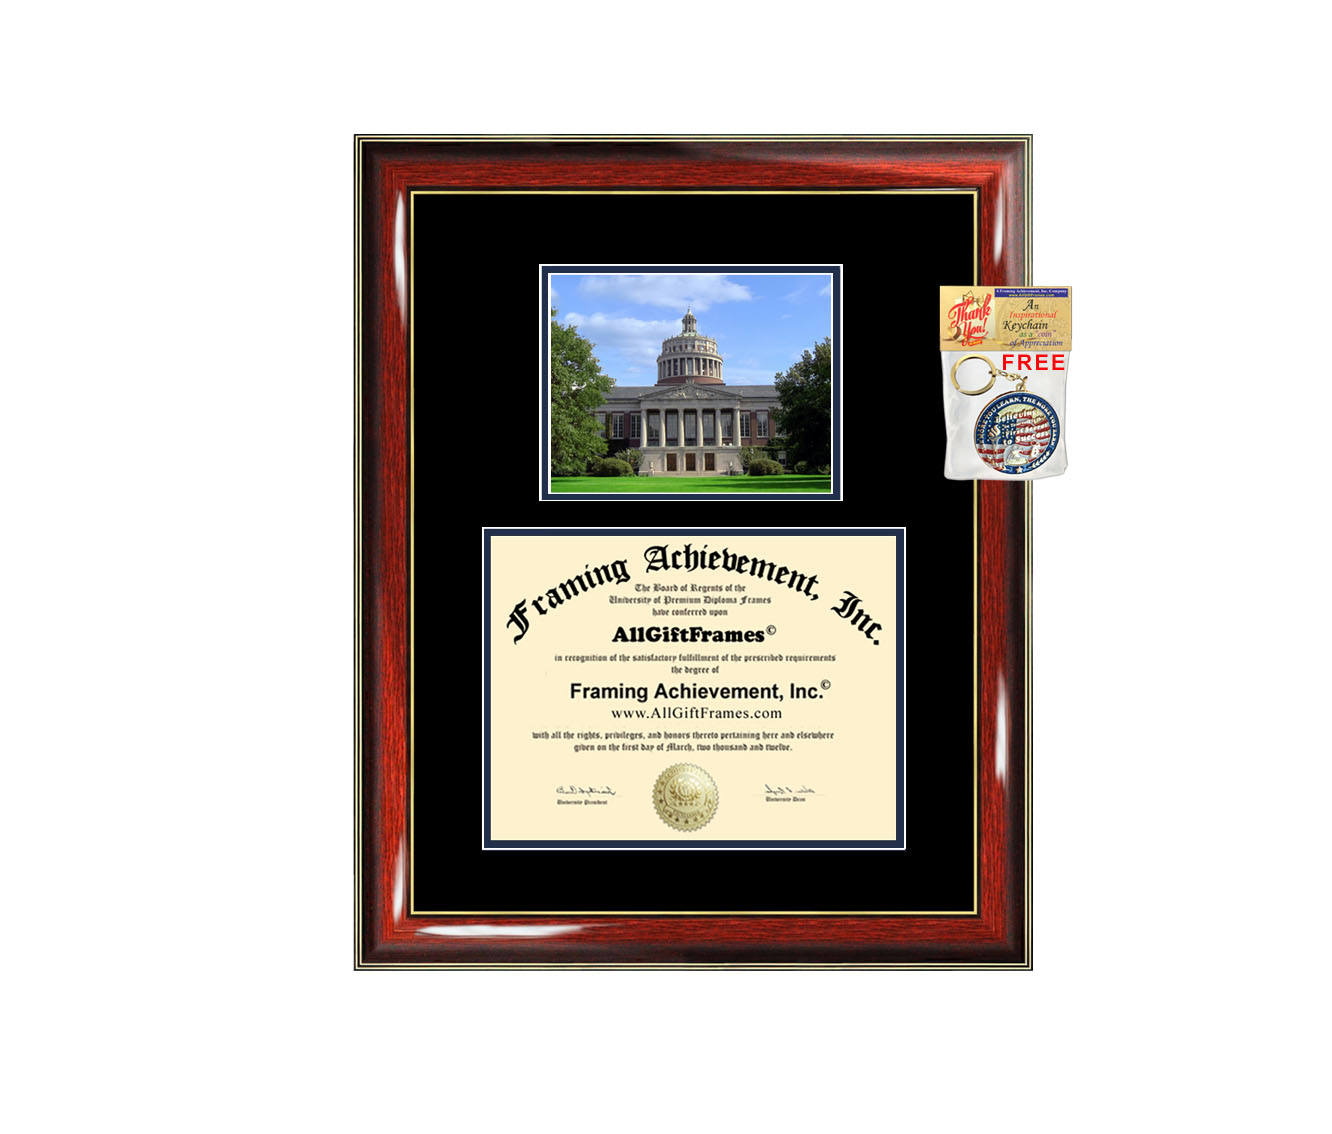 University of Rochester diploma frame campus photo certificate framing